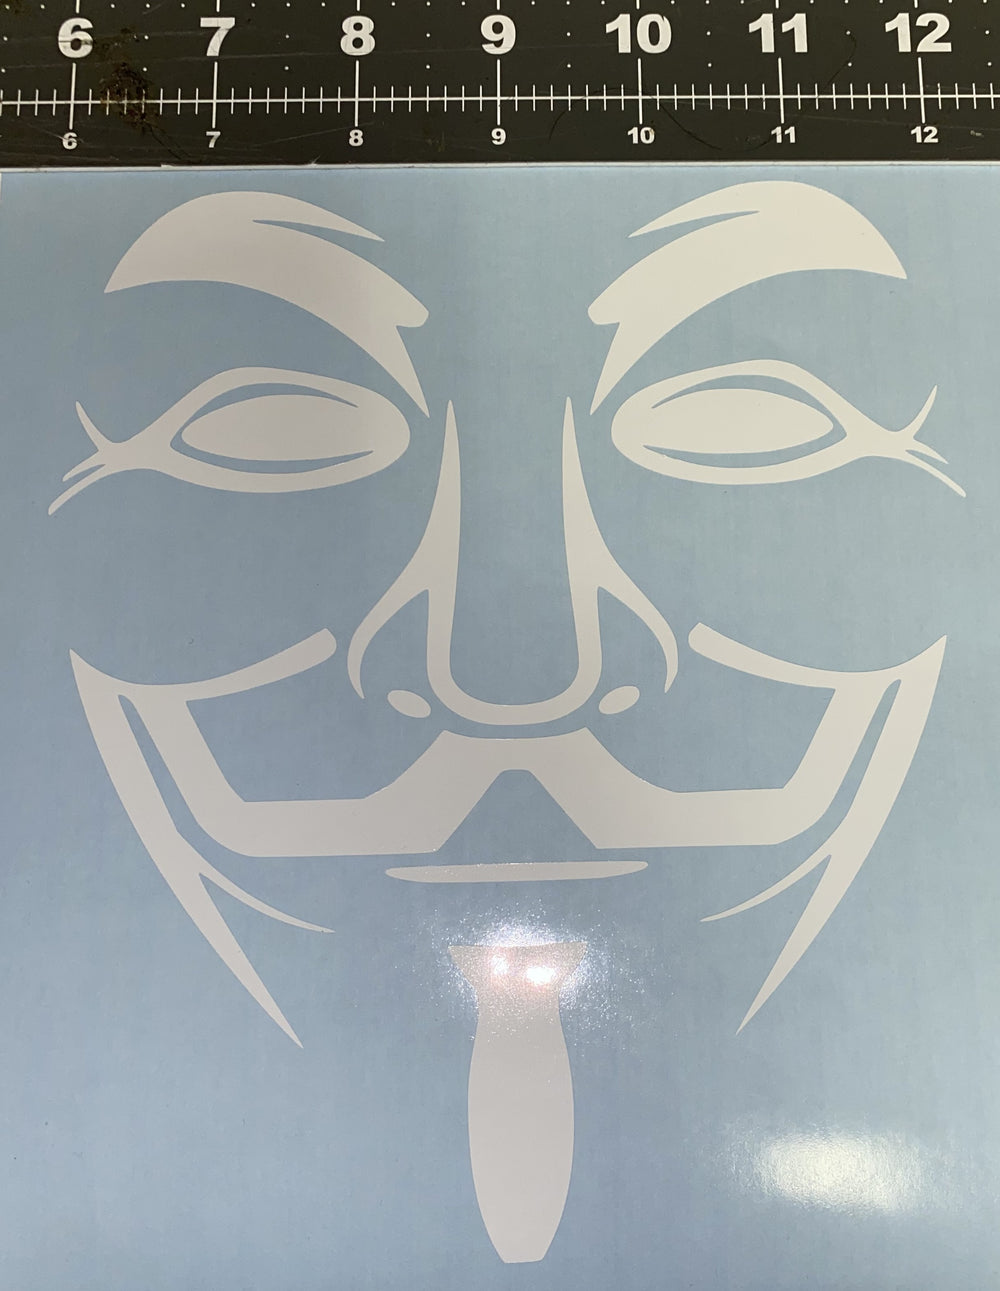 Fawkes Face Mask Decal